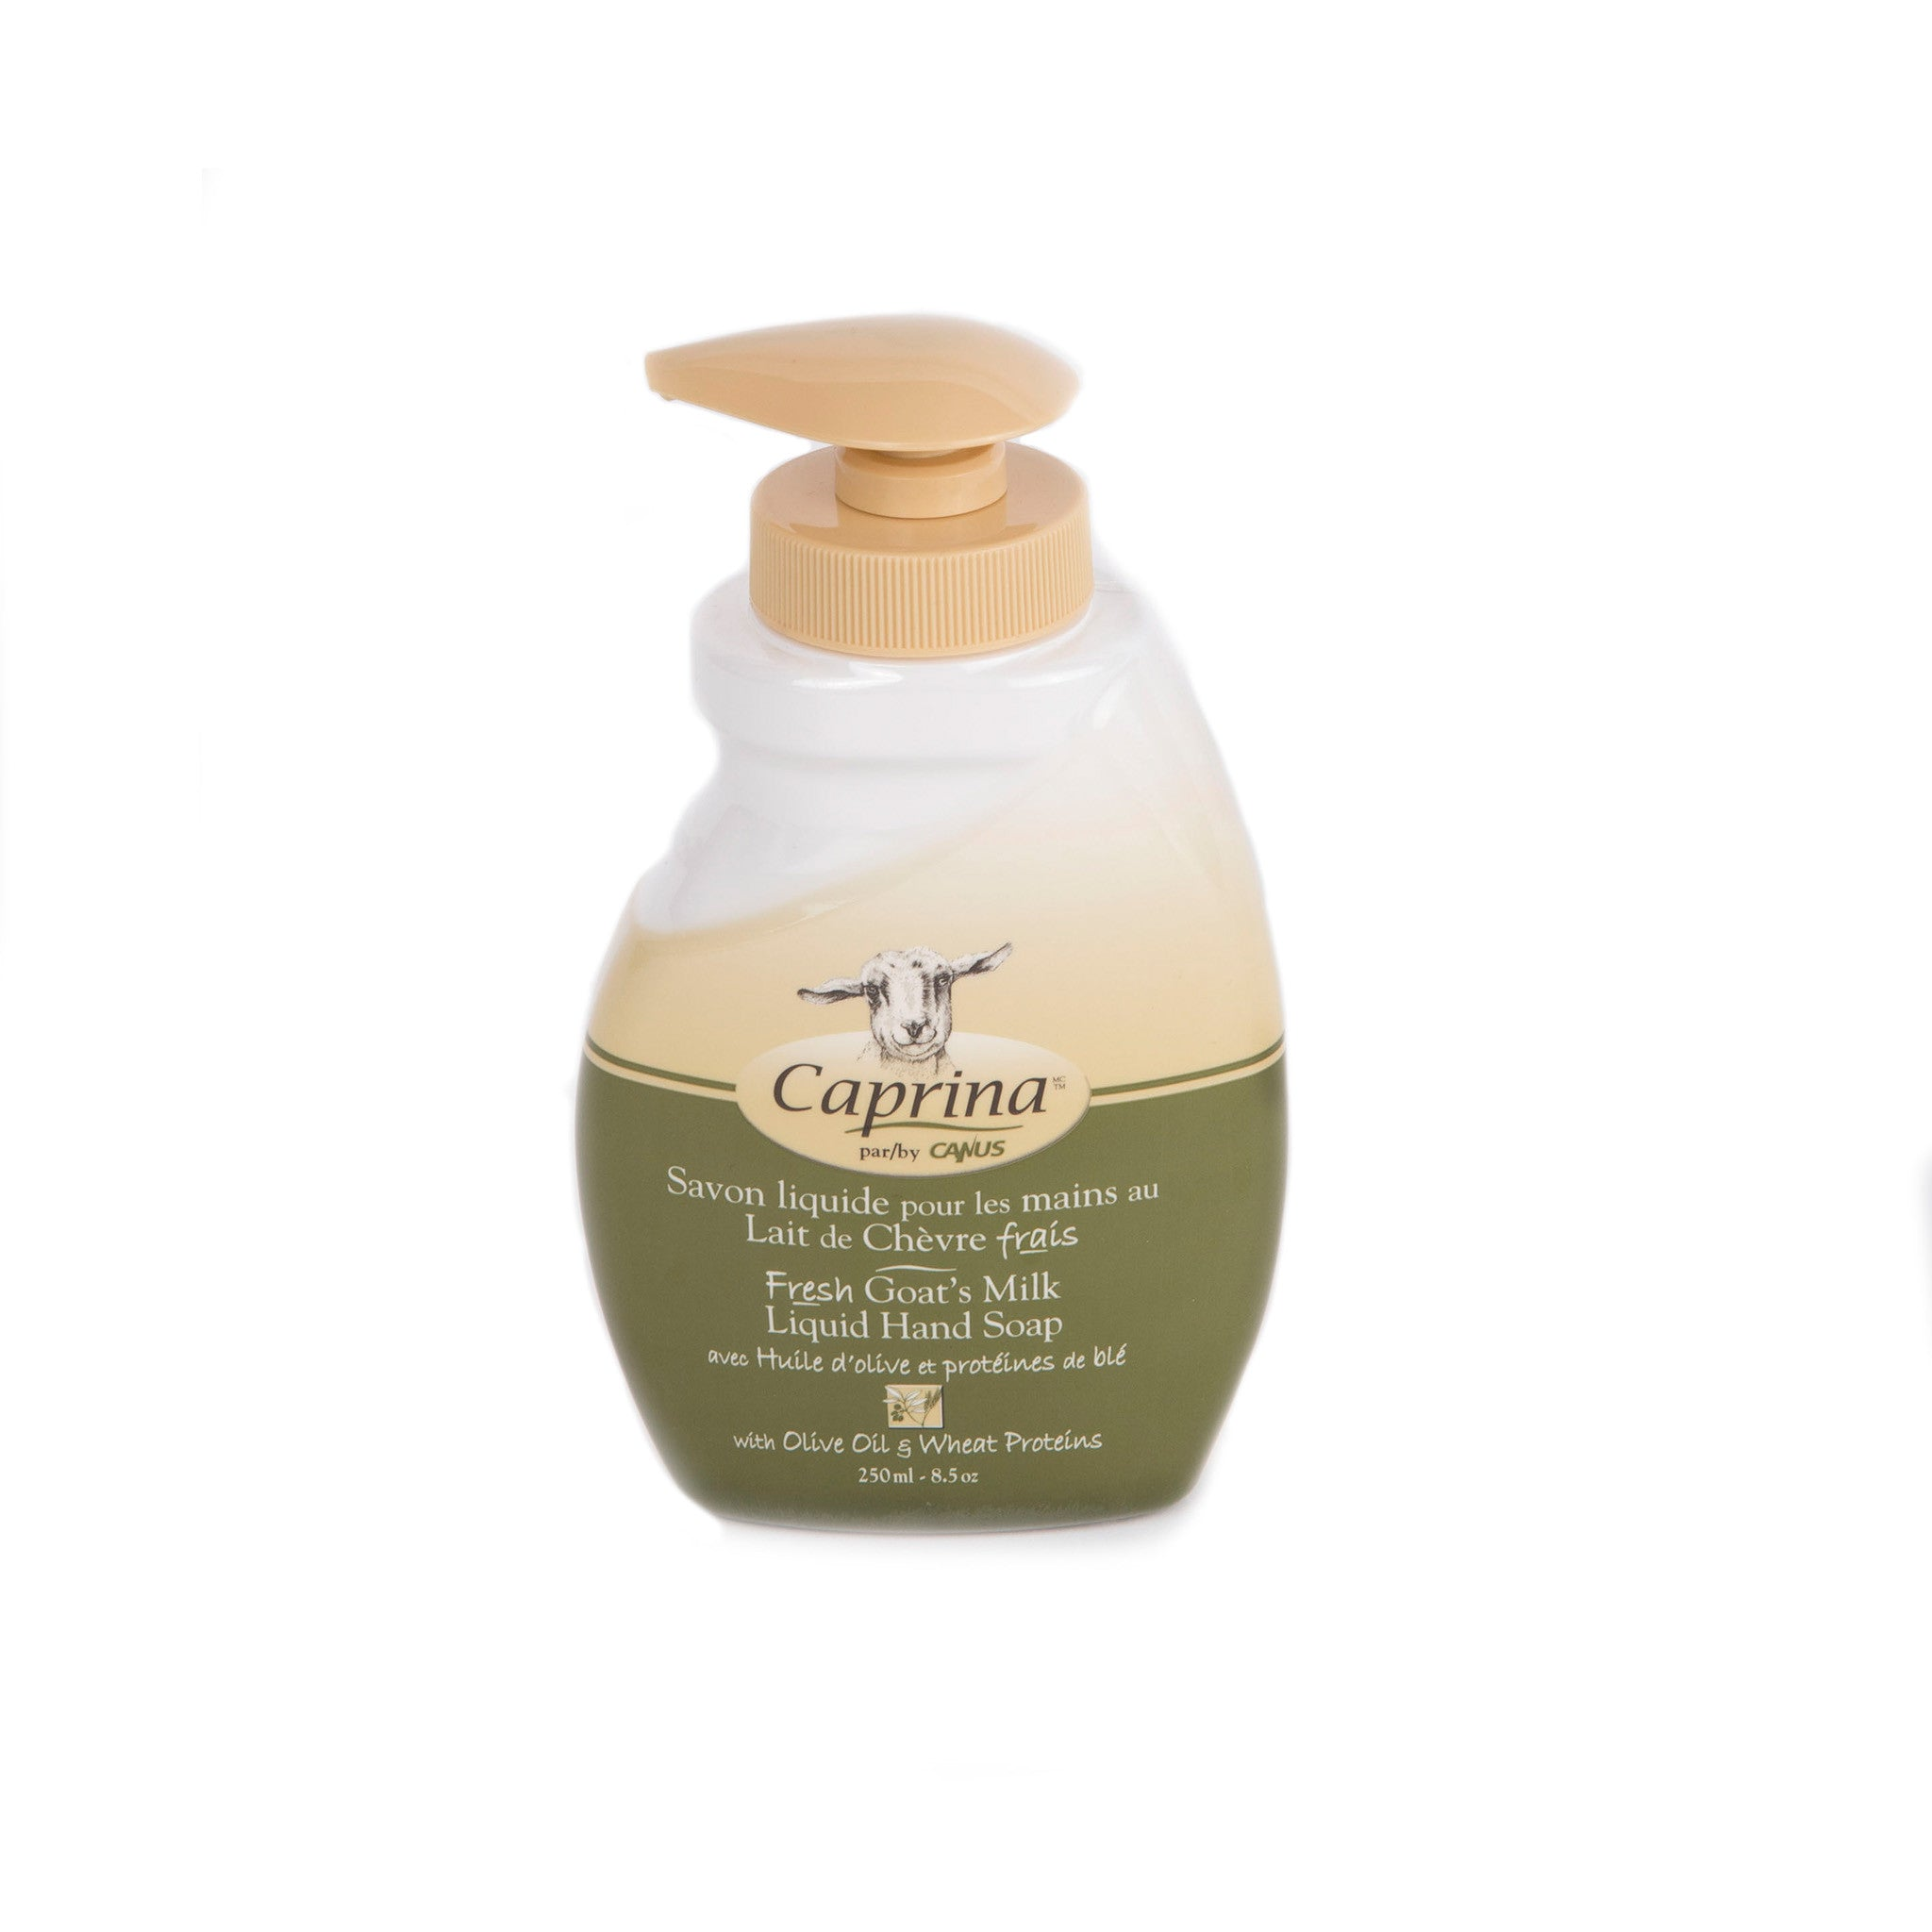 Caprina Liquid Hand Soap Olive Oil & Wheat Proteins